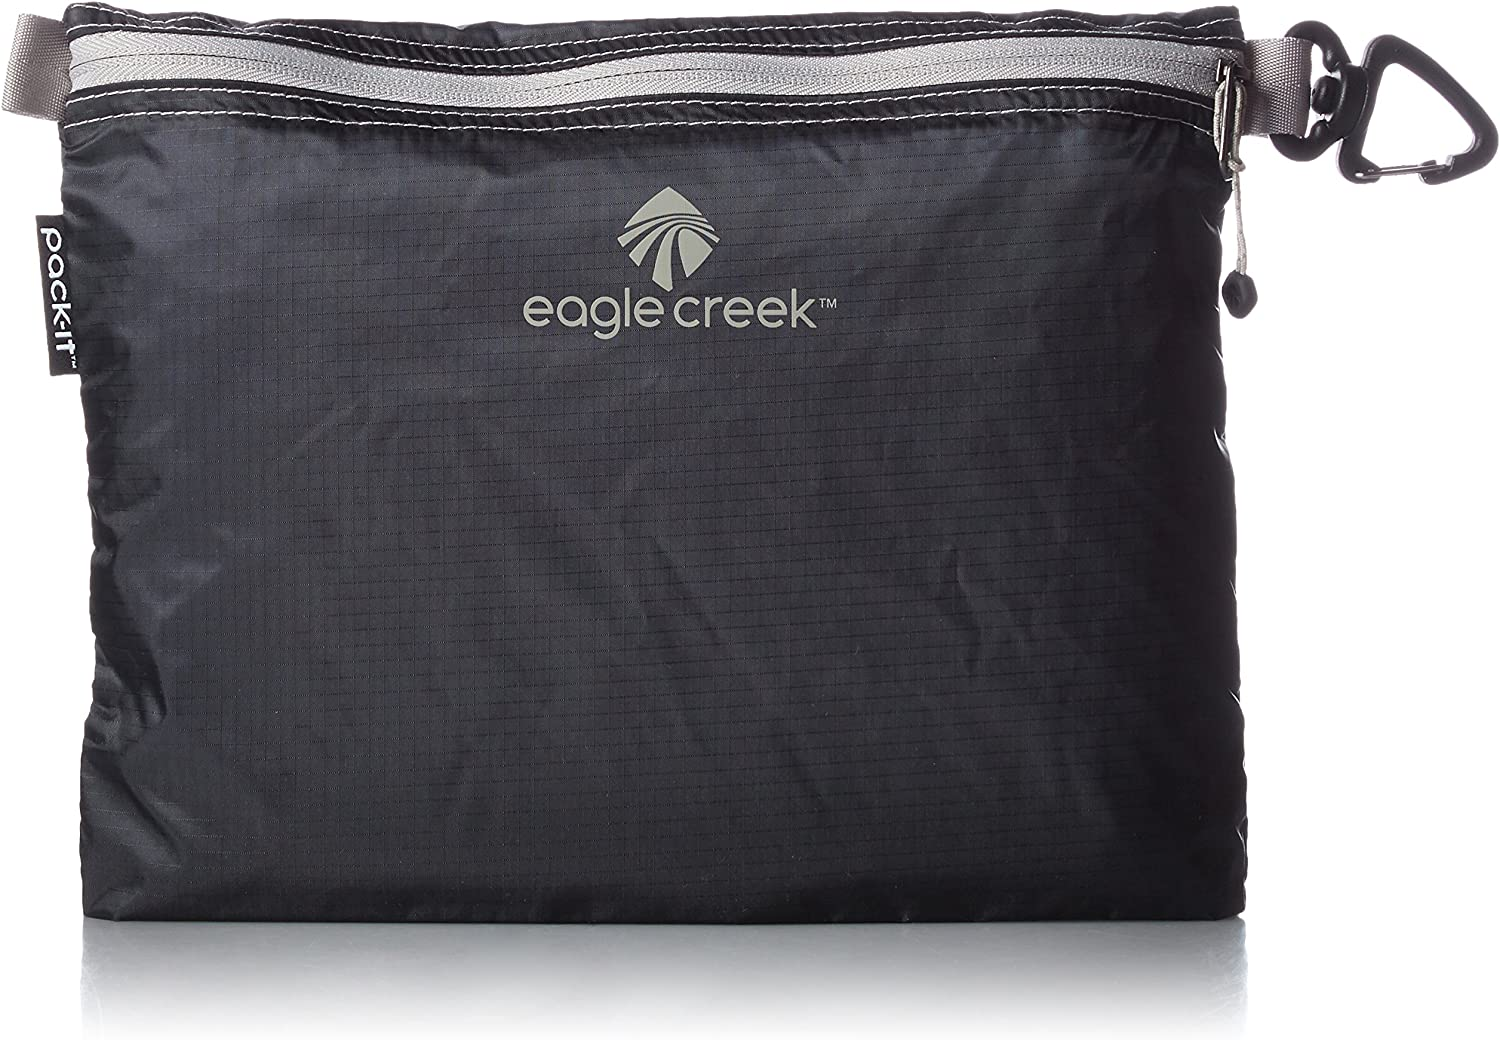 Eagle Creek Pack-it Specter Sac Medium Ebony